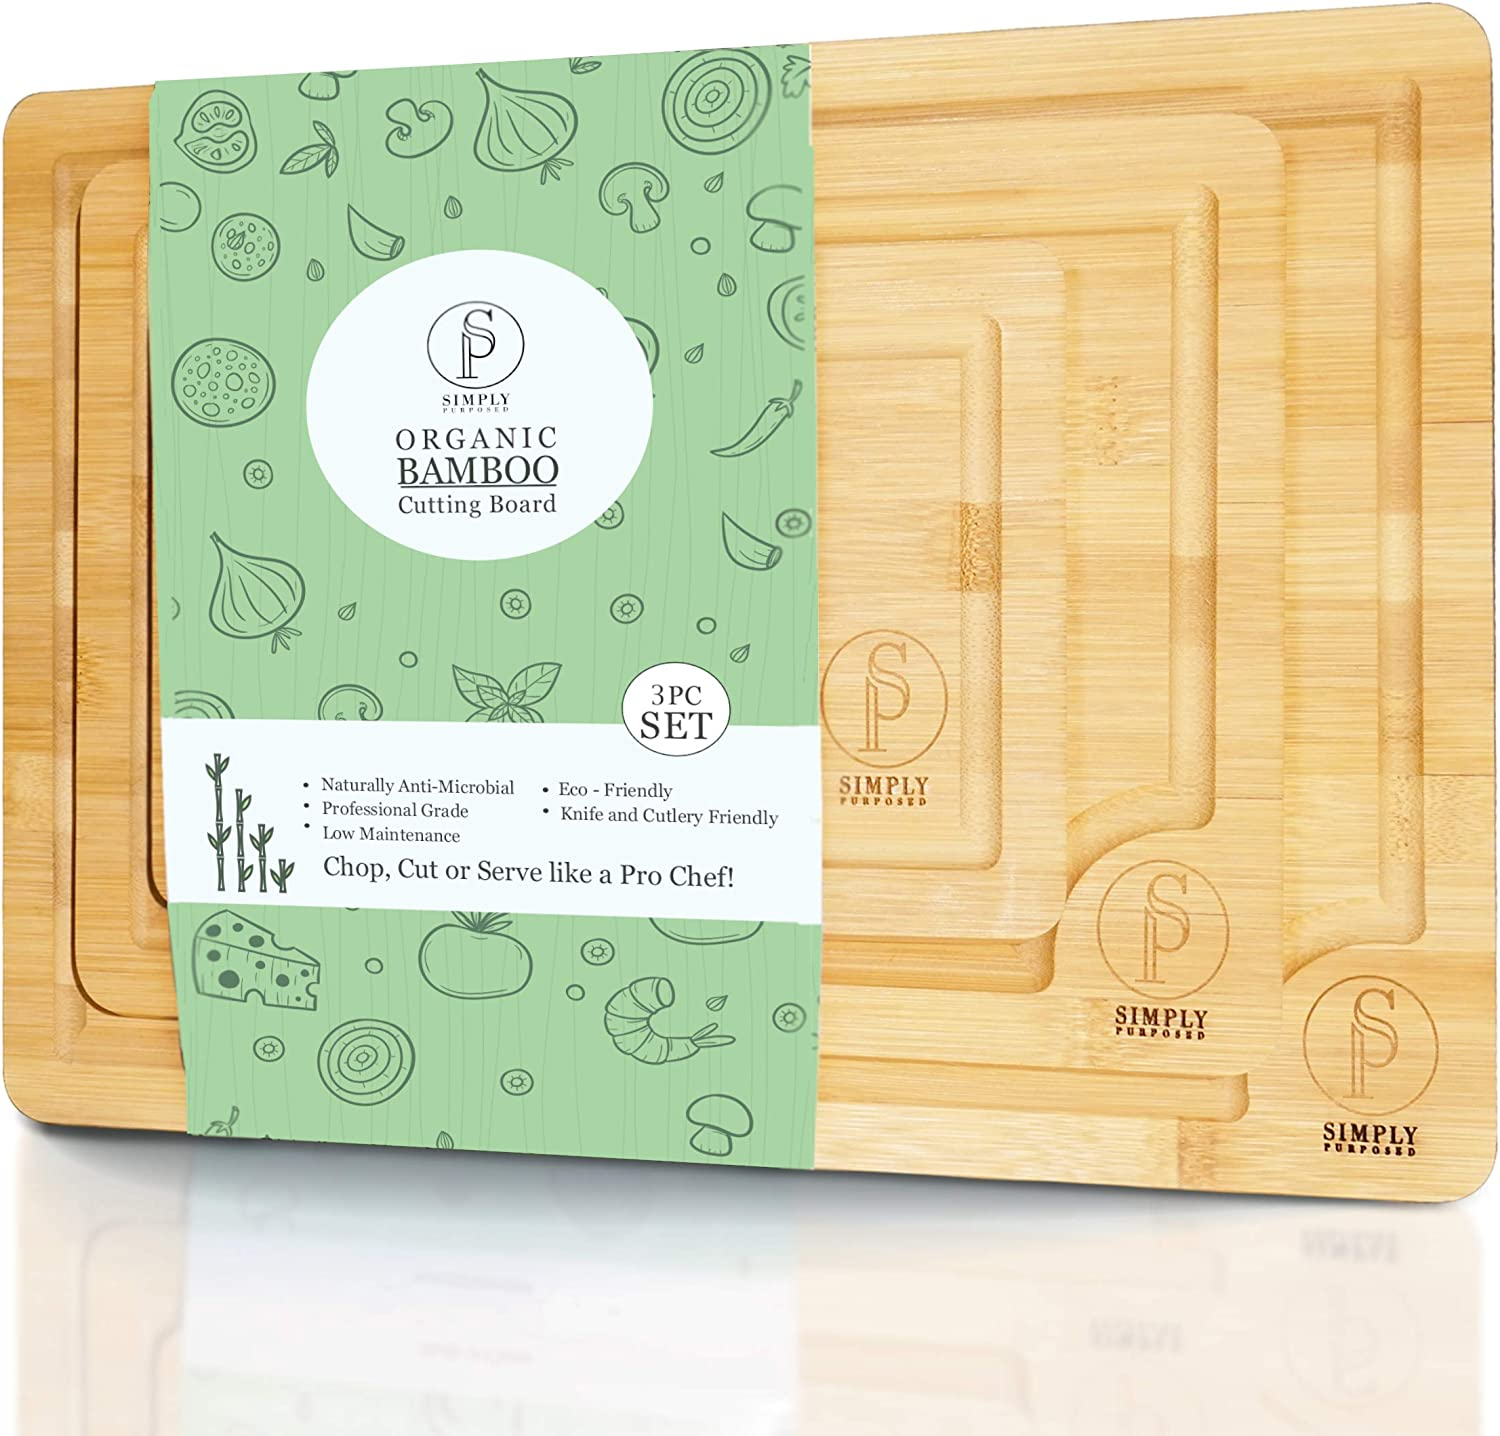 Simply Purposed Overseas parallel import regular item Bamboo Cutting Board Cho Wood – All Natural Deluxe